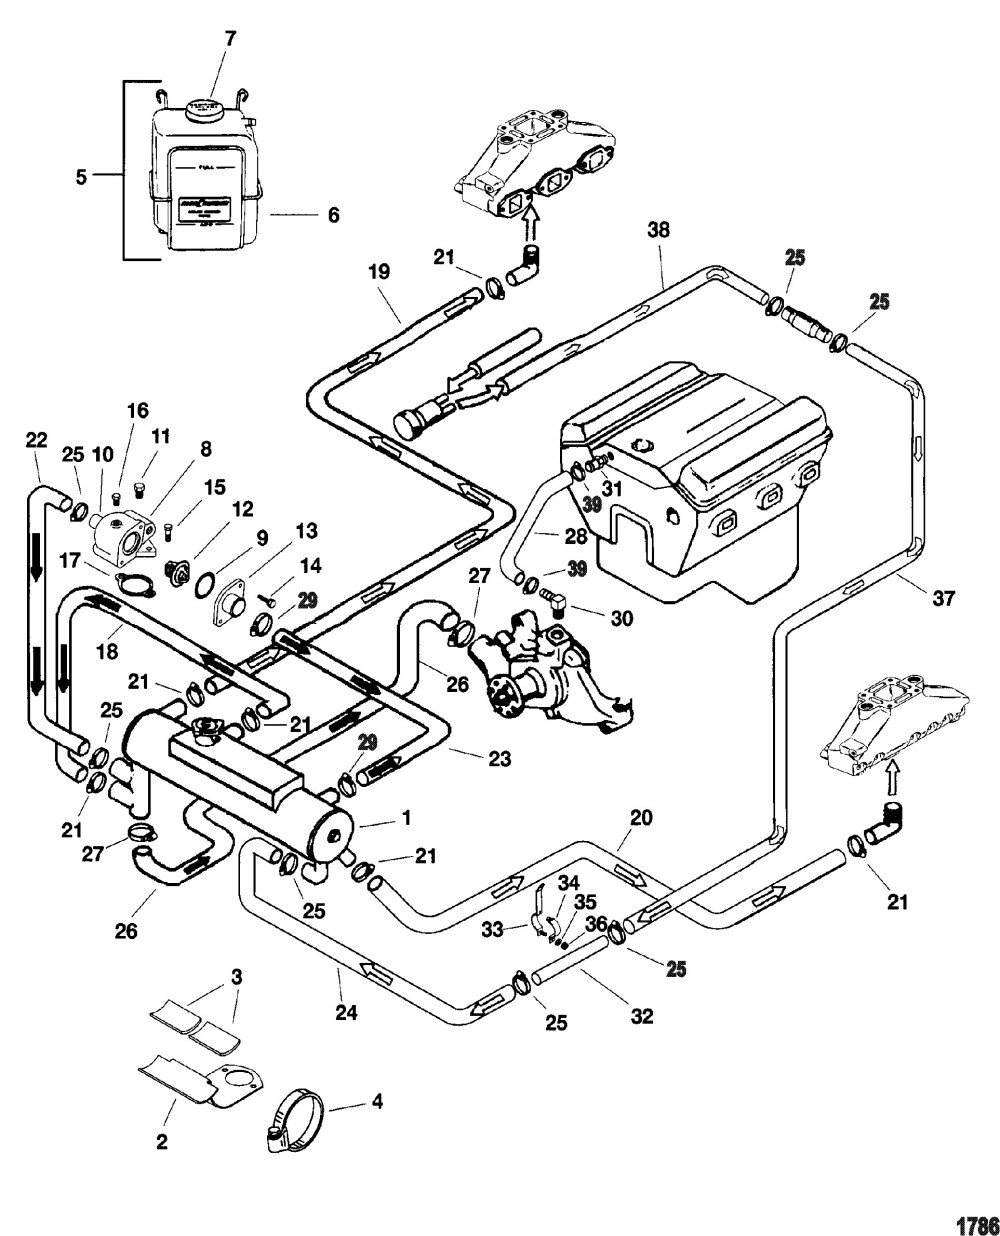 medium resolution of 07 z4 airbag diagram circuit wiring and diagram hub u2022 rh bdnewsmix com 2006 bmw z4